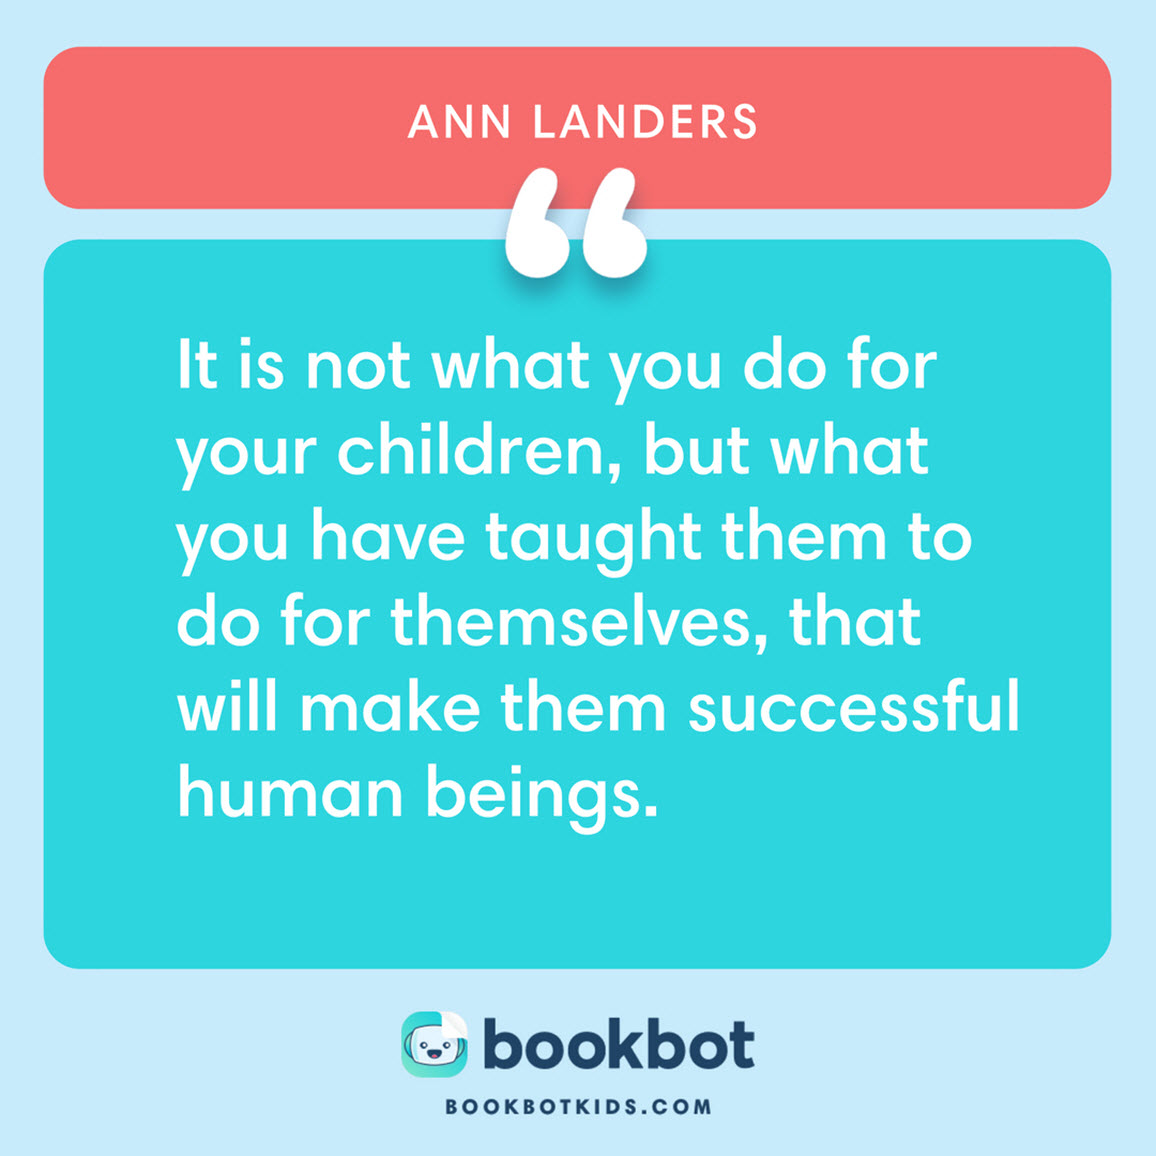 It is not what you do for your children, but what you have taught them to do for themselves, that will make them successful human beings. – Ann Landers